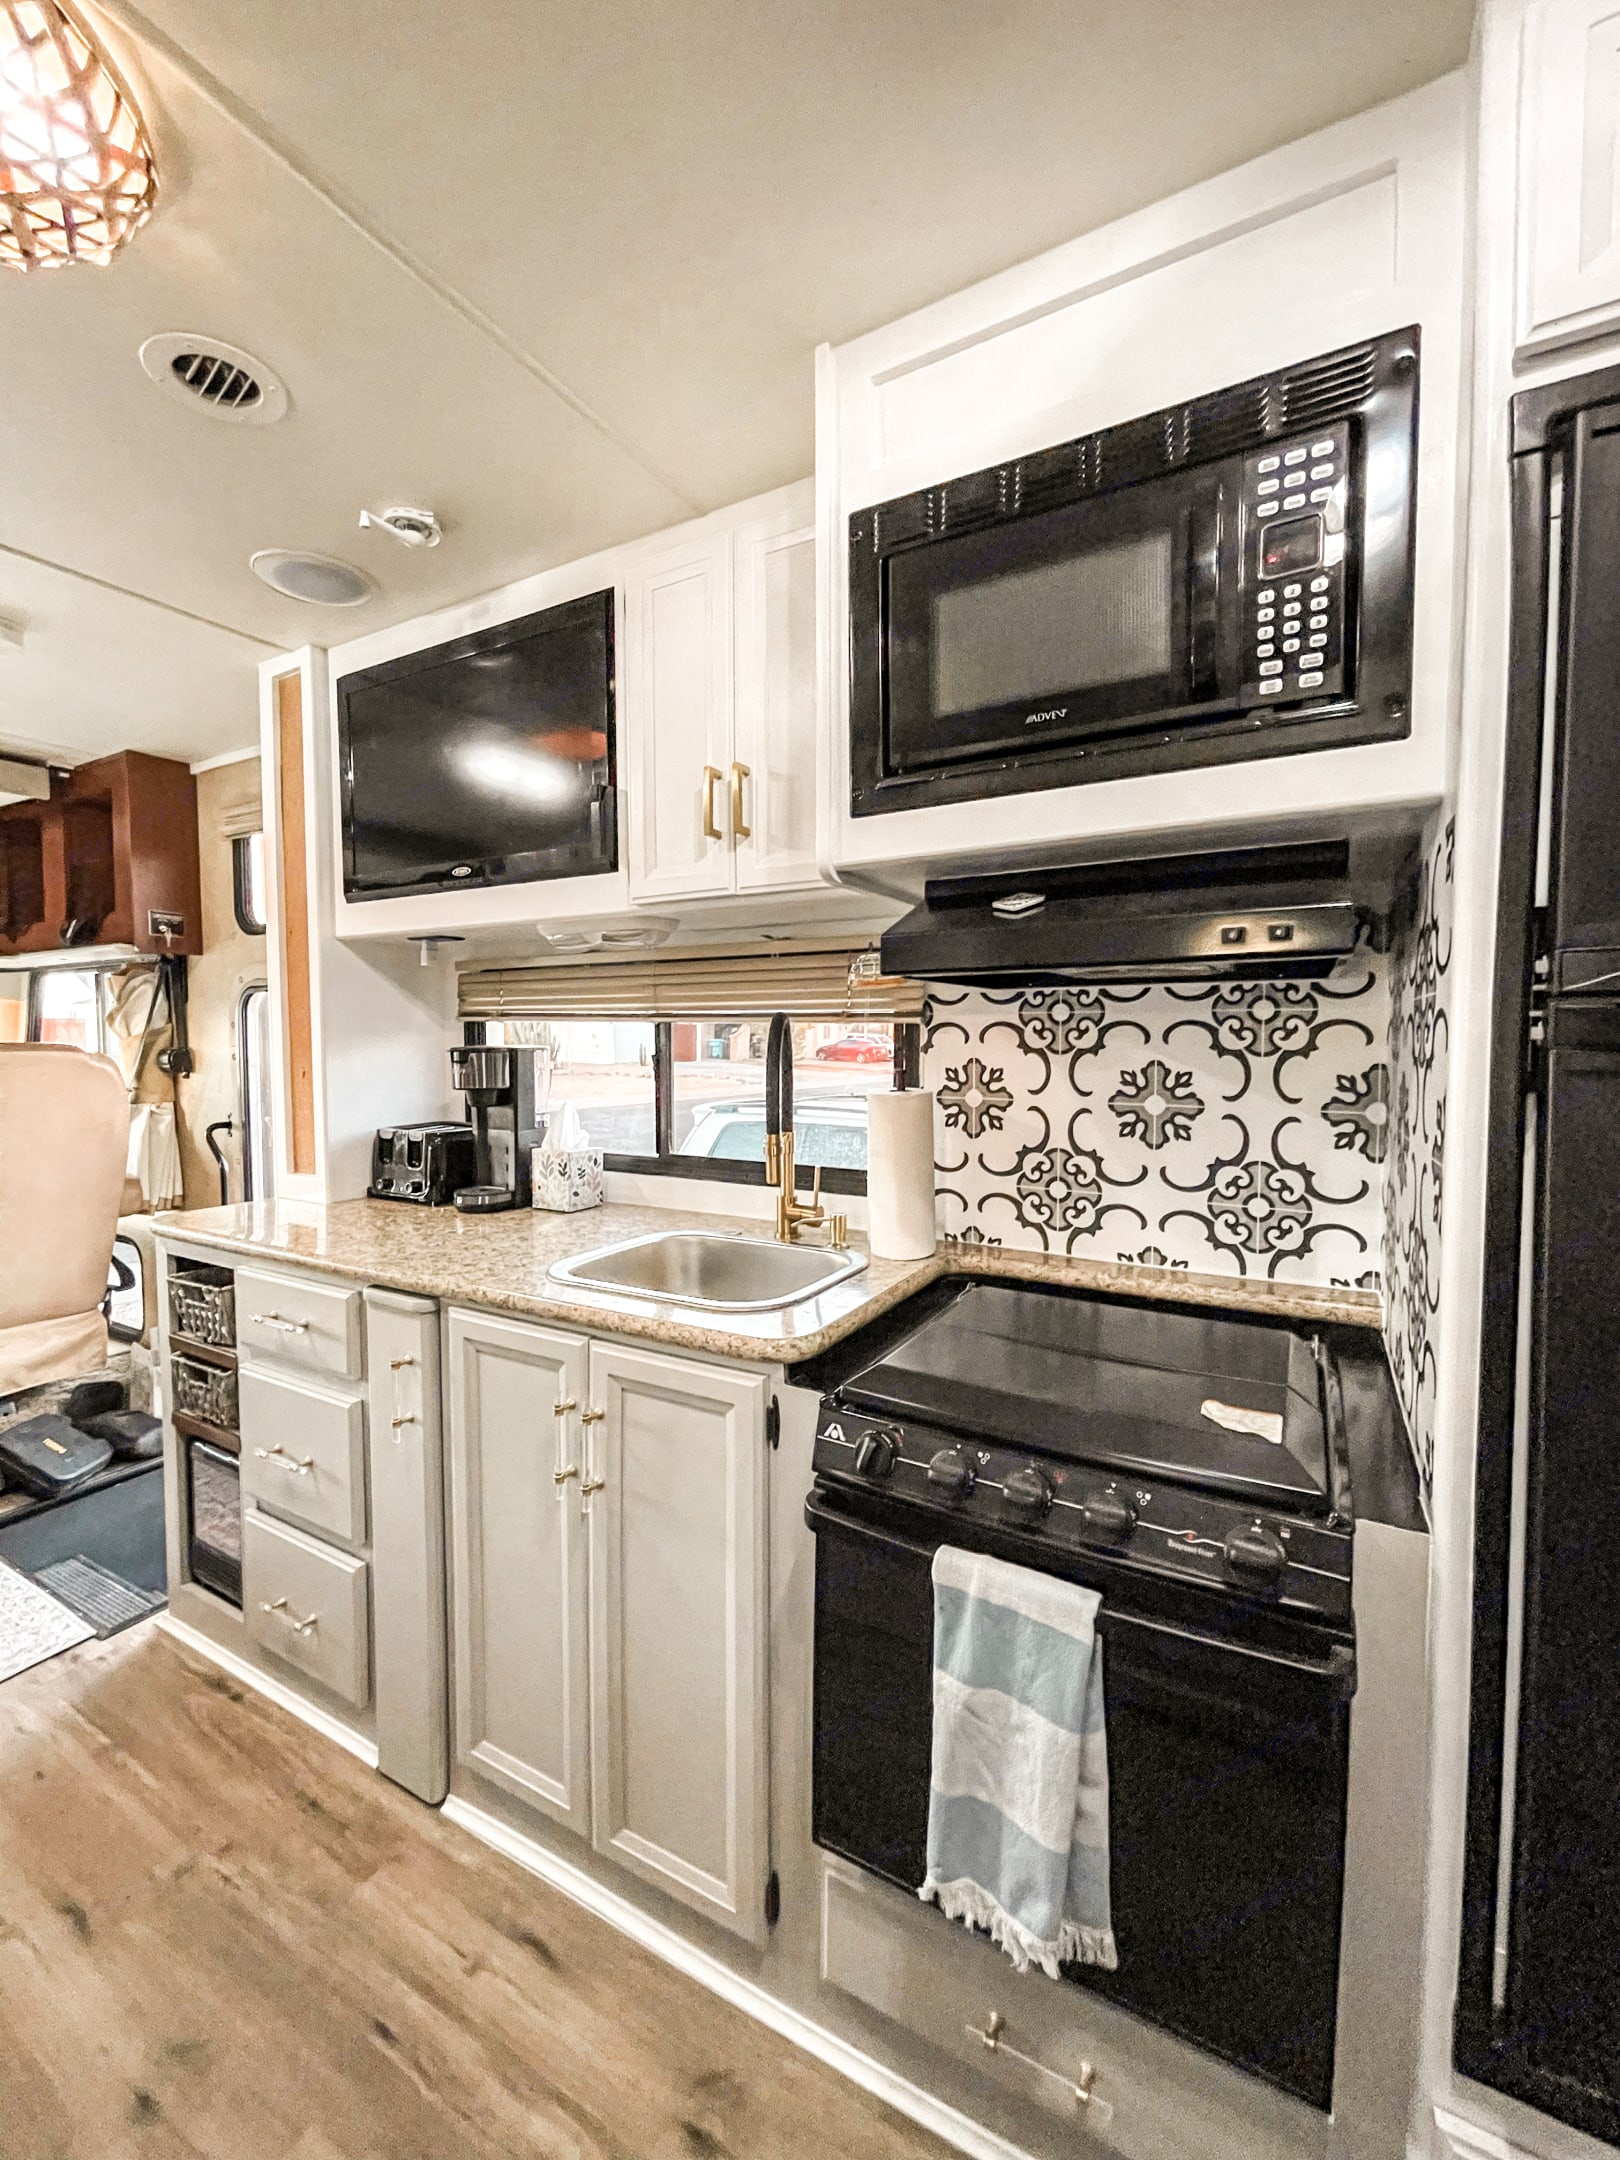 This kitchen has great counter space for cooking. Microwave, stove, oven, toaster, and coffee maker. . Thor Motor Coach A.C.E 2014